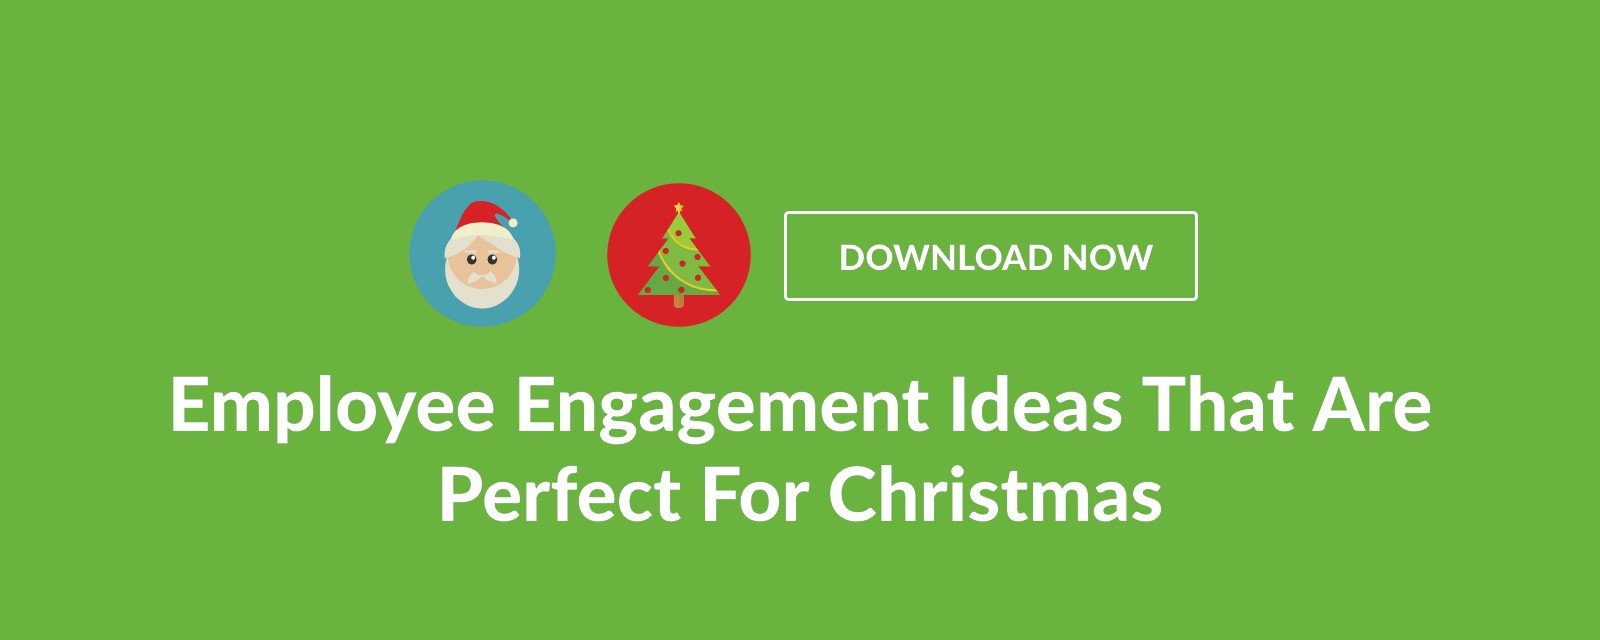 Employee Engagement Ideas That Are Perfect For Christmas